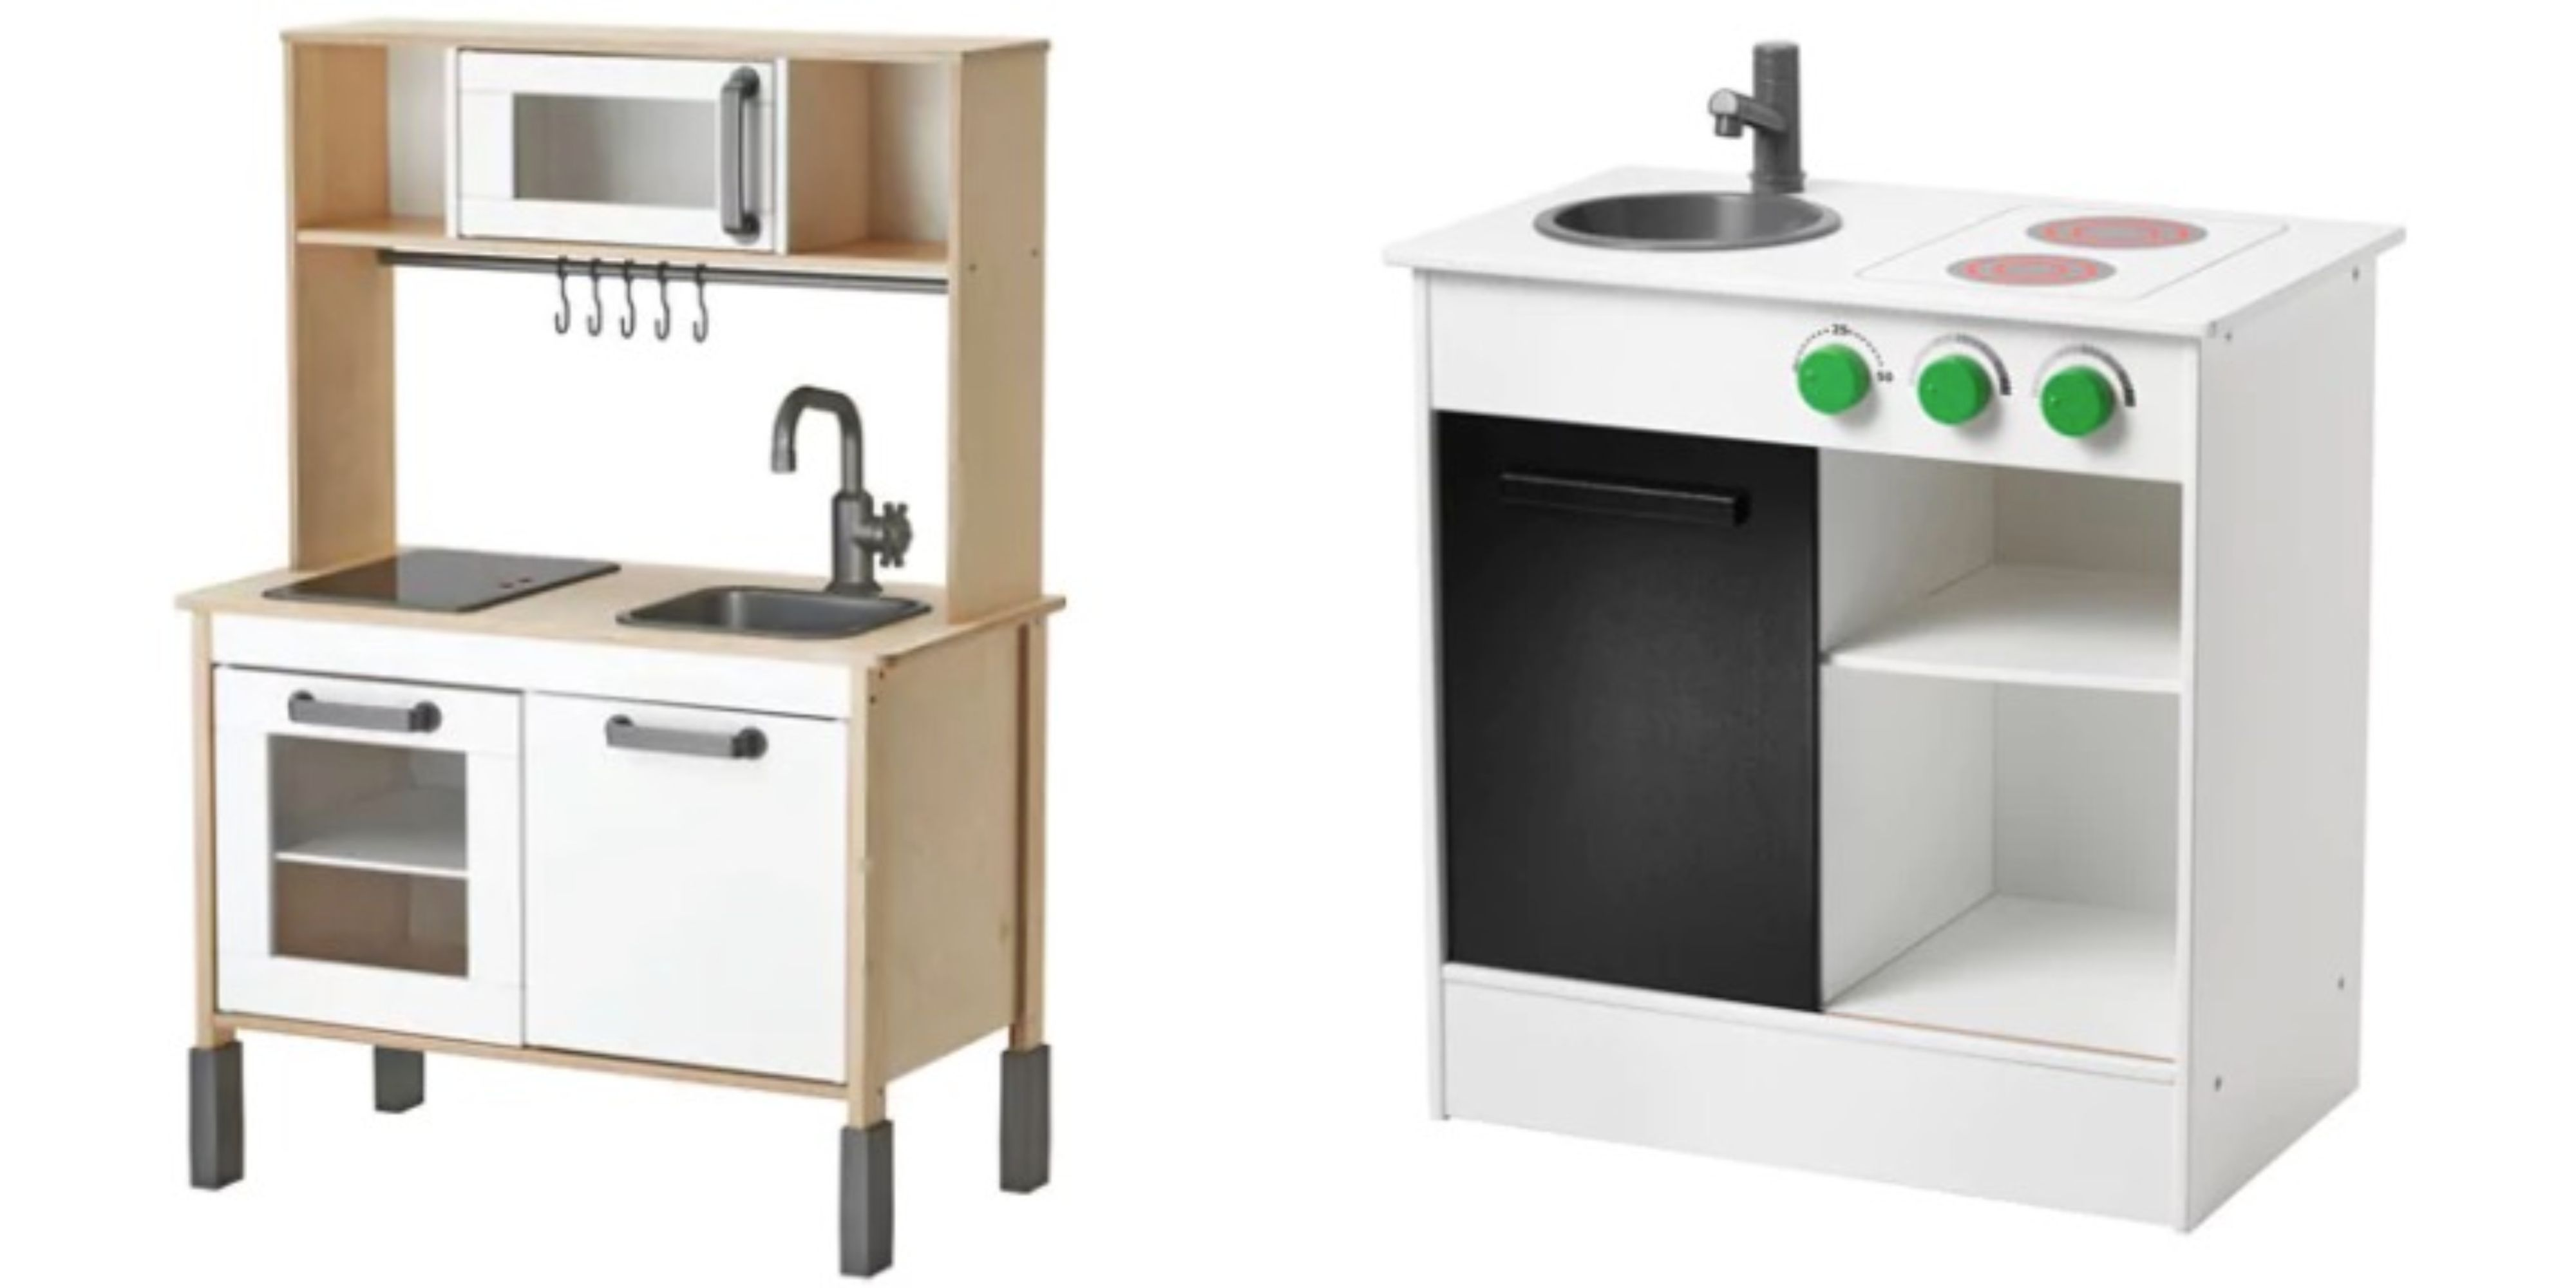 IKEA Wooden Play Kitchens – IKEA Play Kitchen For Sale